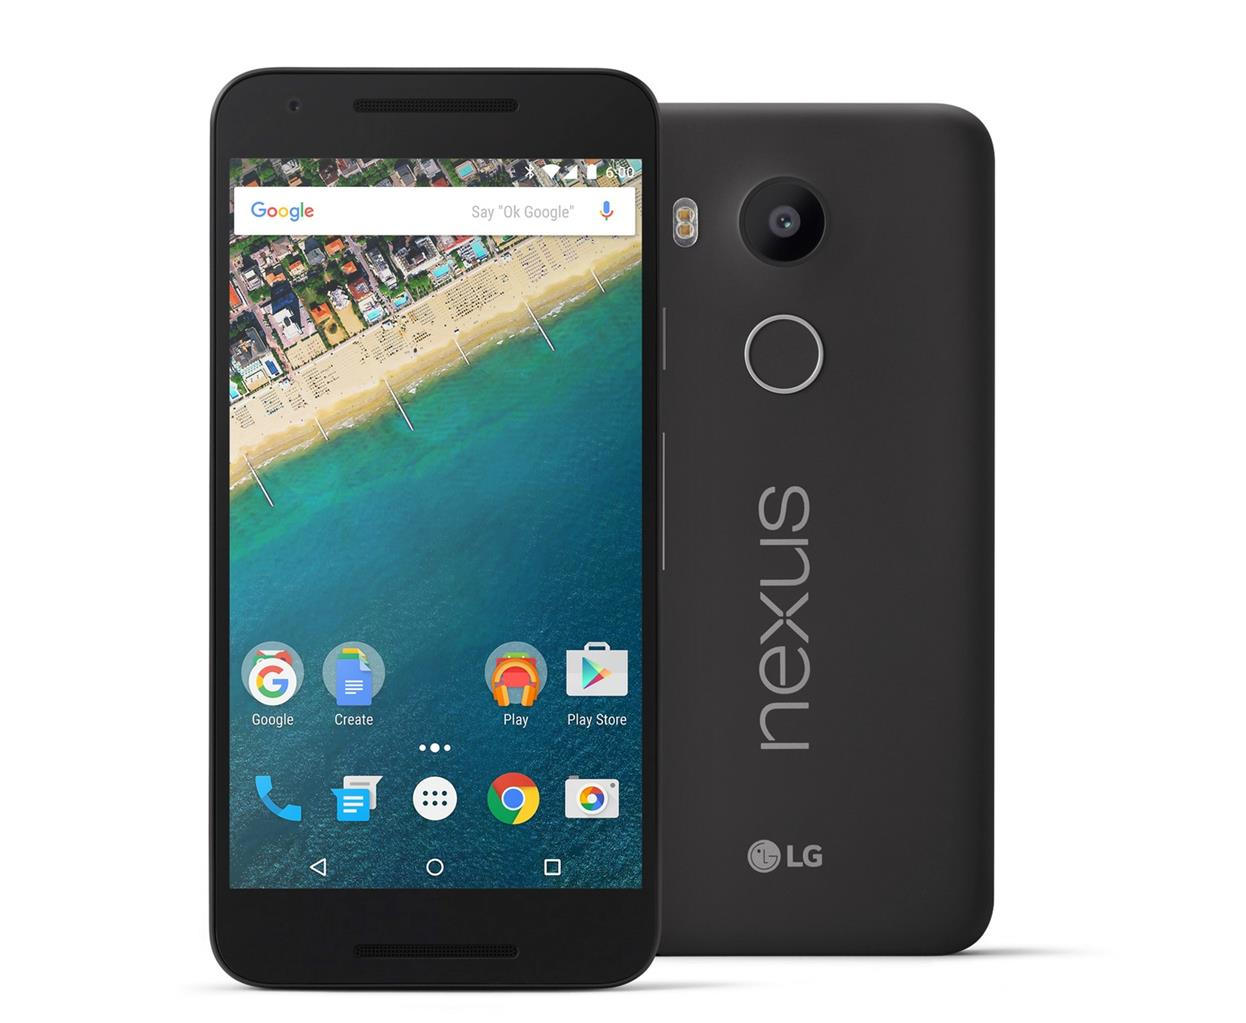 lg nexus 5x h790 16gb factory gsm unlocked 4g lte android smartphone us model ebay. Black Bedroom Furniture Sets. Home Design Ideas